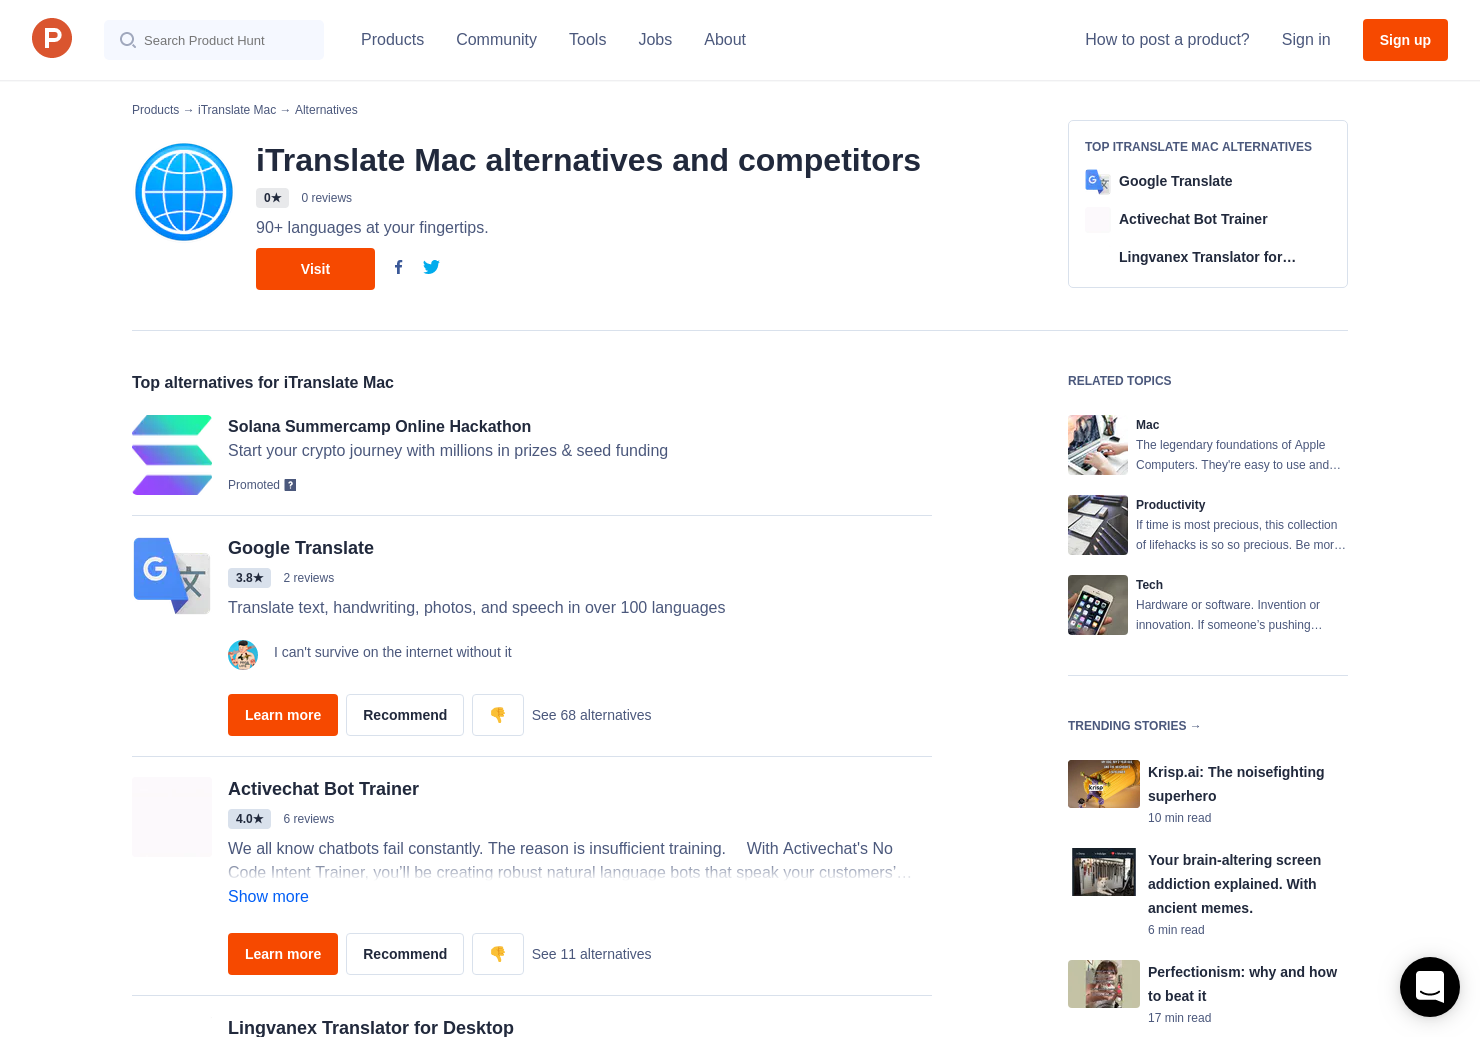 11 Alternatives to iTranslate Mac for Mac | Product Hunt